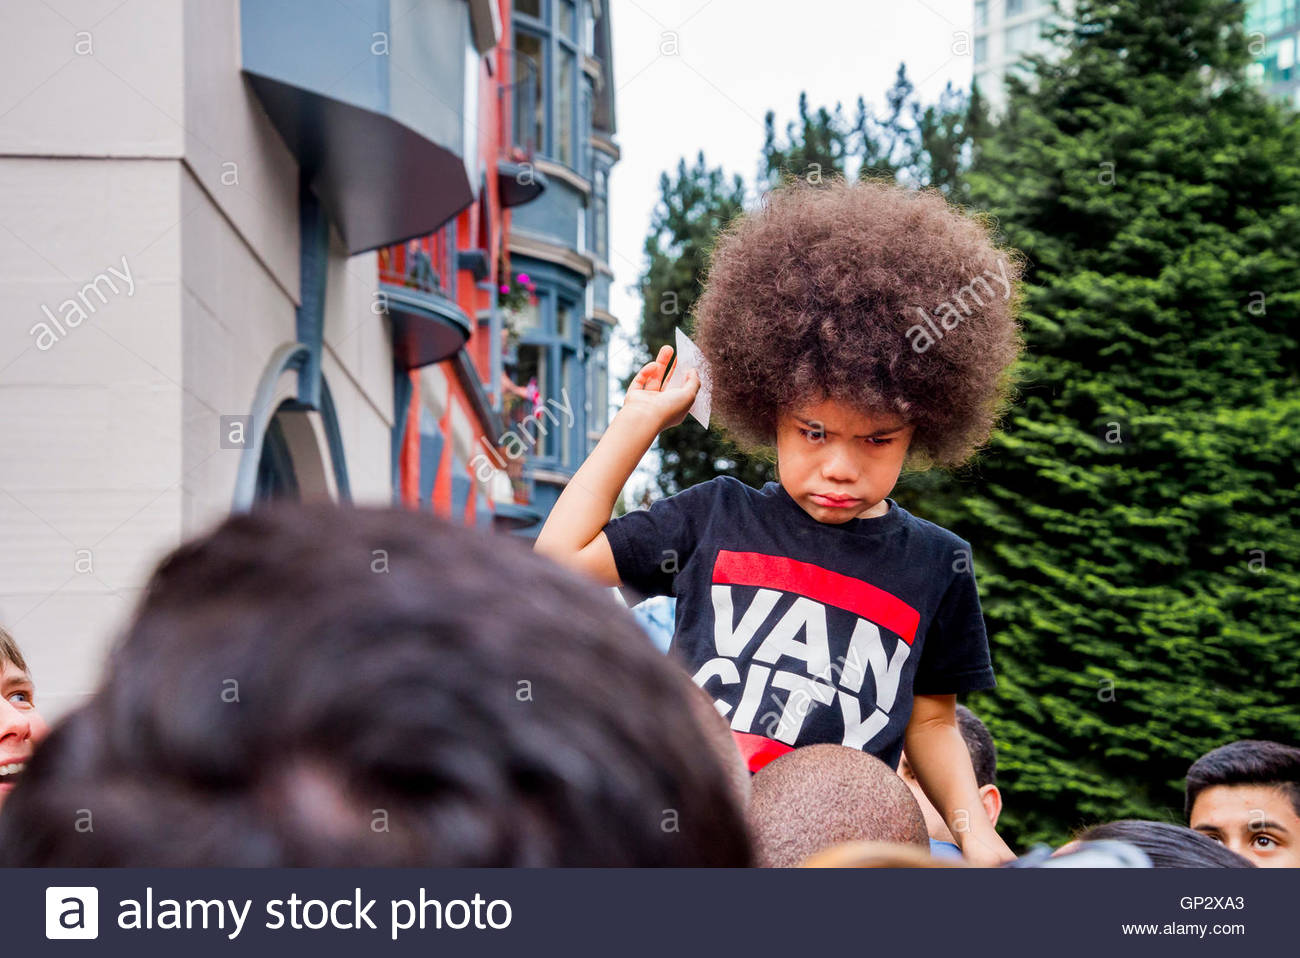 Young boy having a tantrum - Stock Image